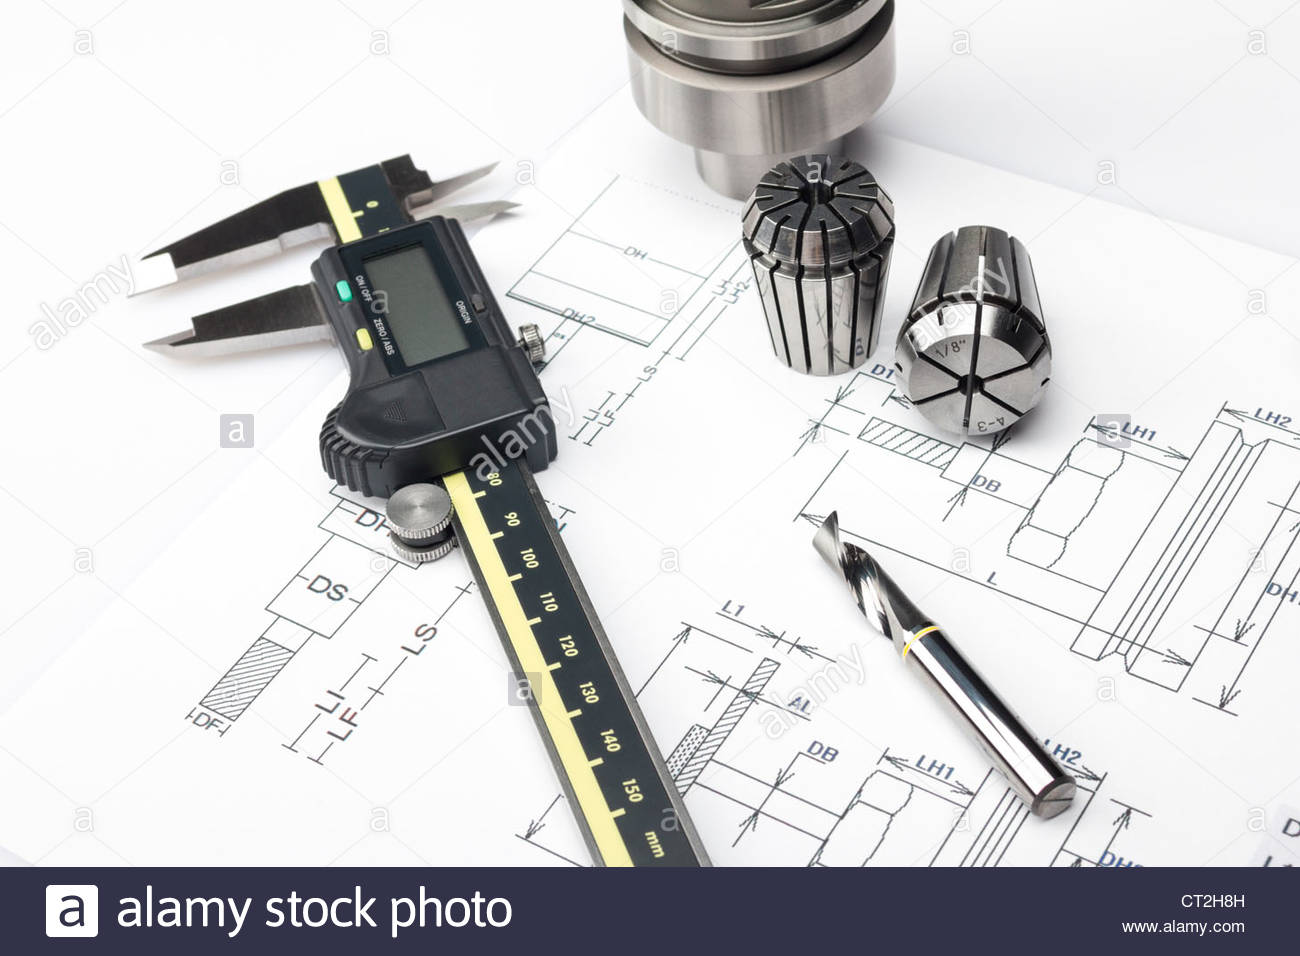 Measuring machining tools - Stock Image